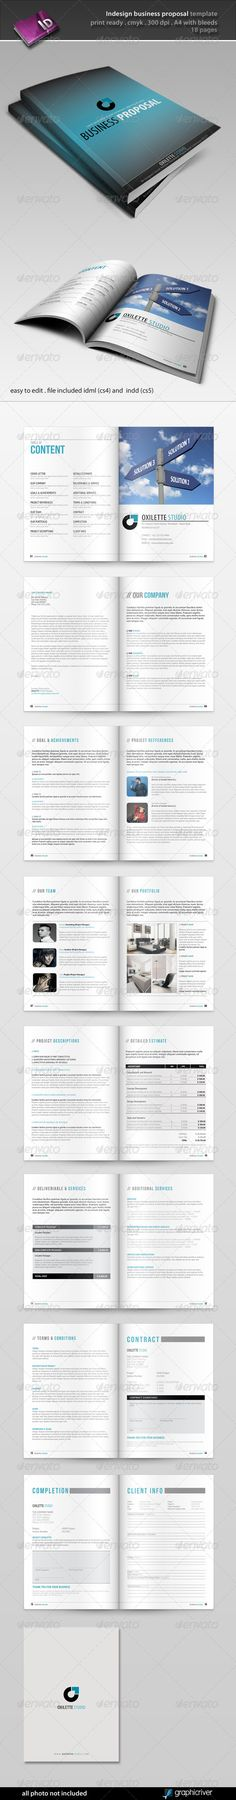 Proposal Template u2014 Photoshop PSD #company proposal #corporate - proposal layouts